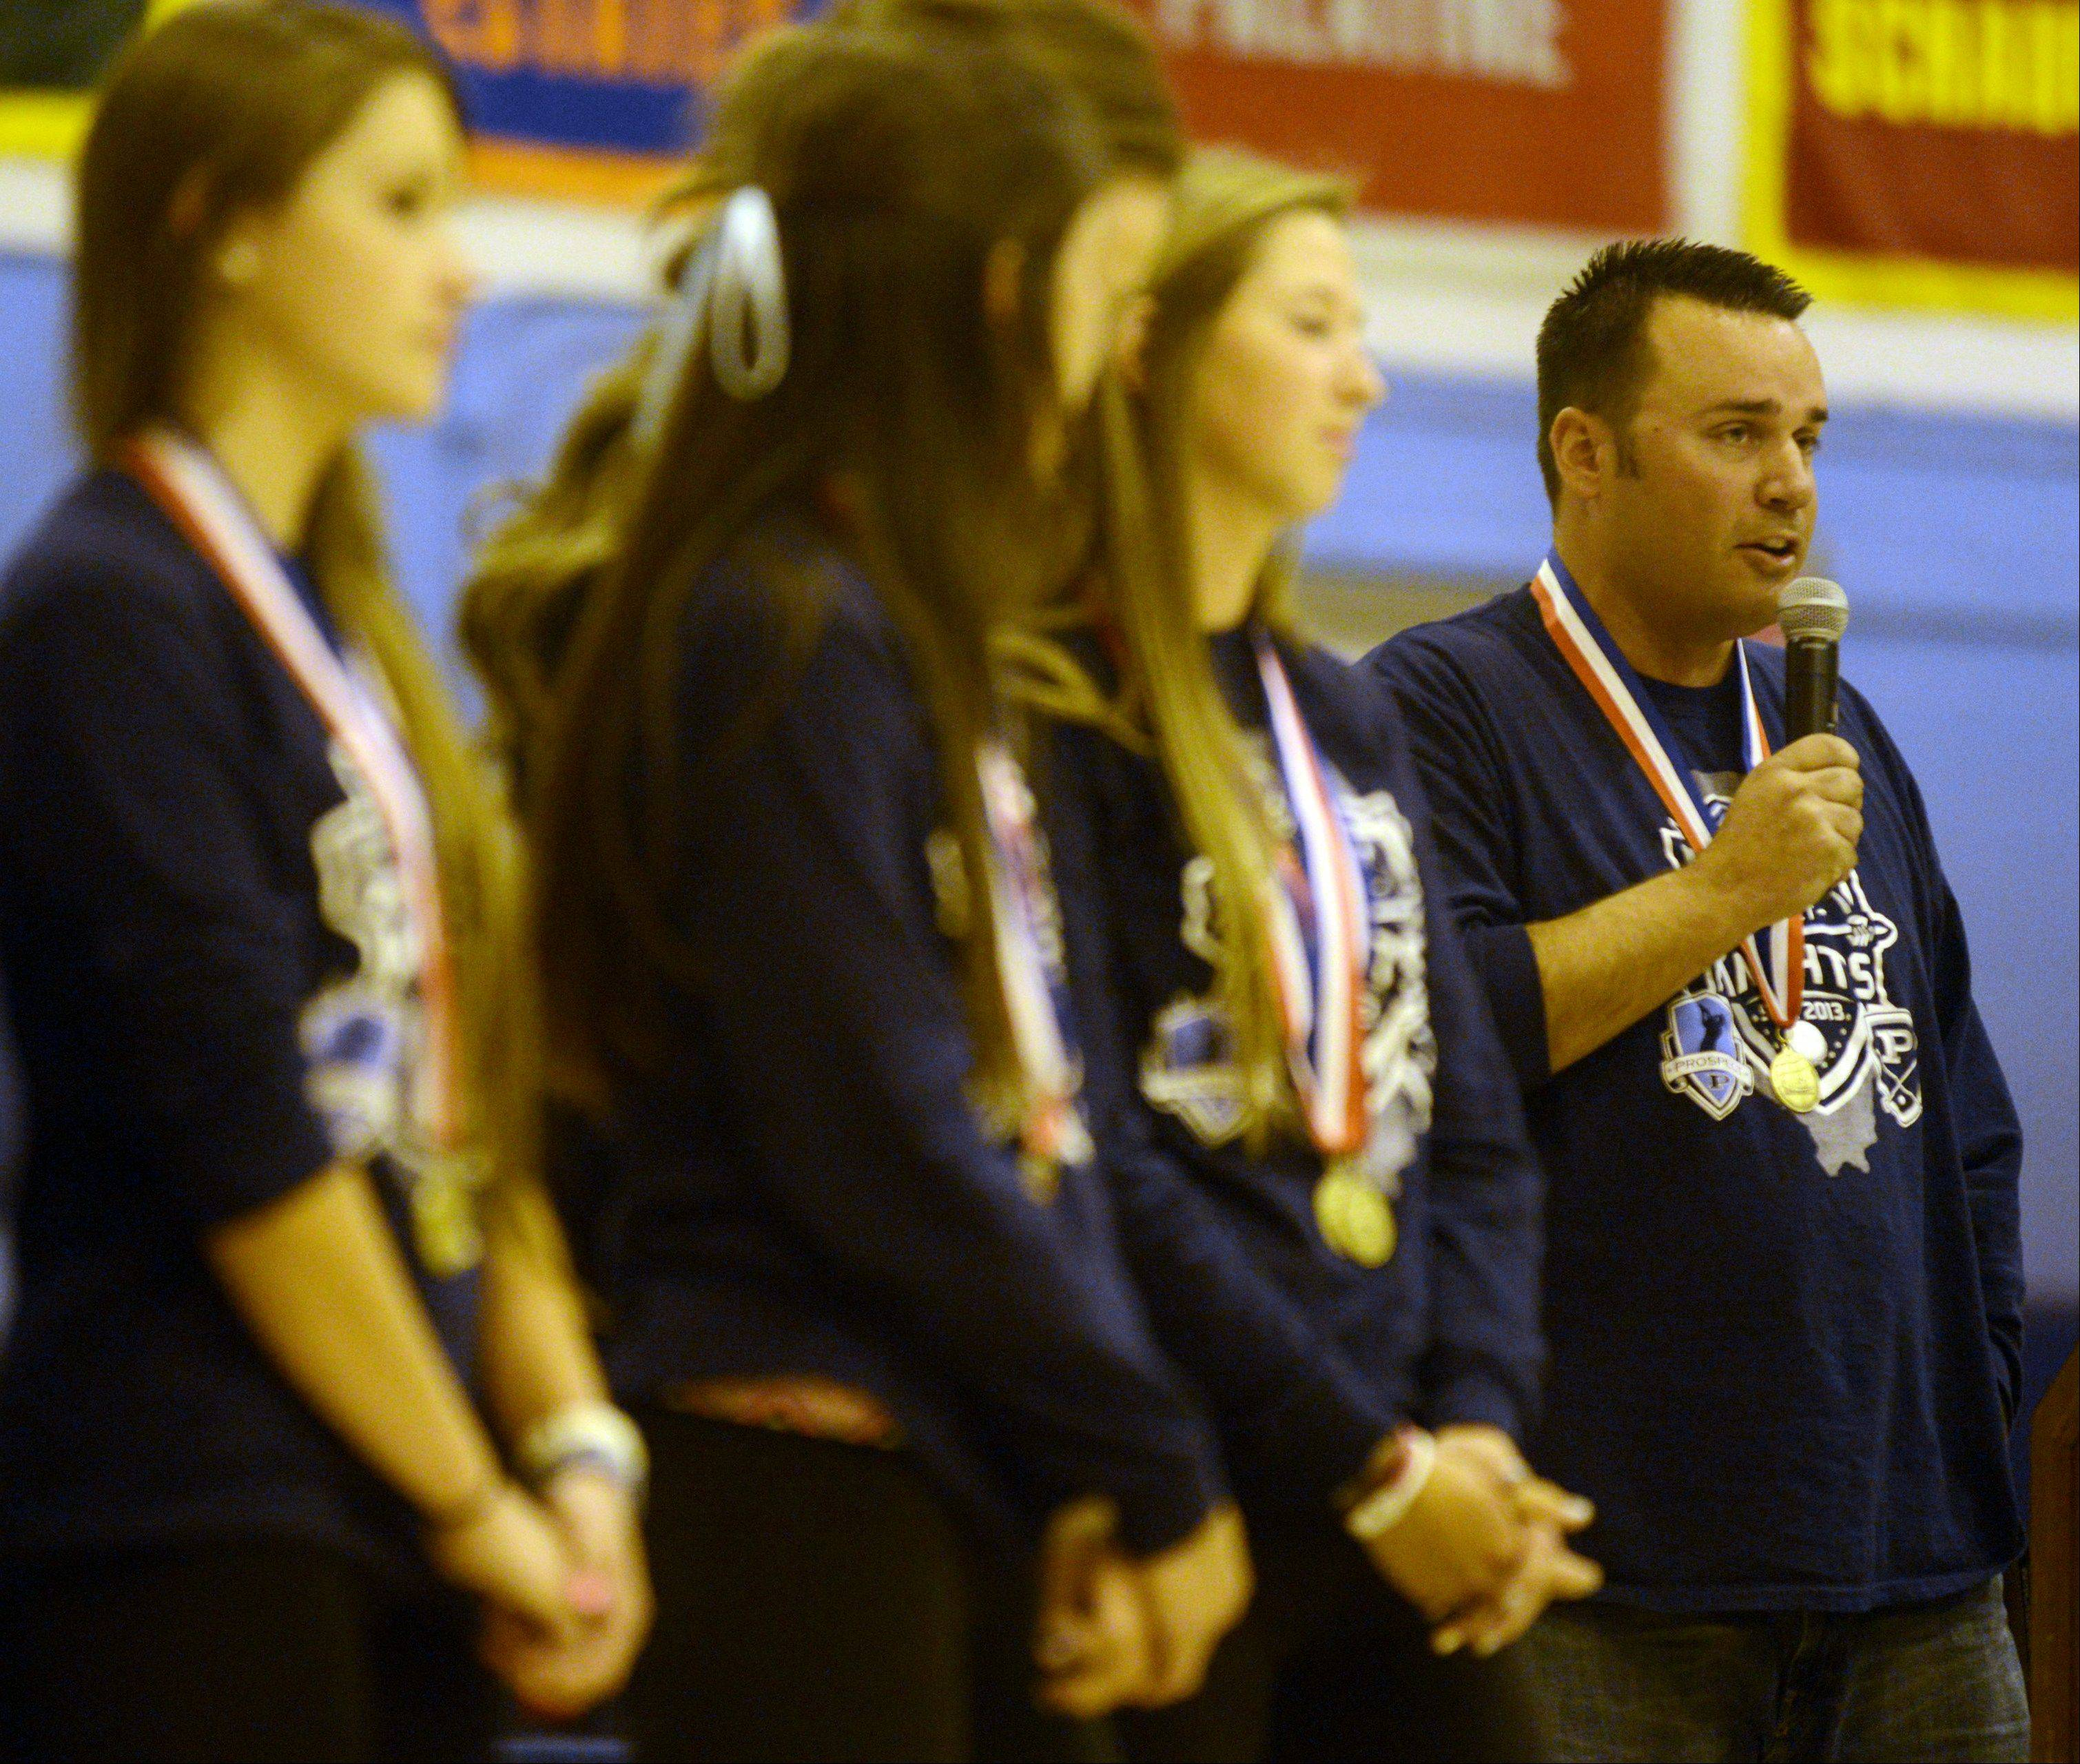 Prospect girls golf head coach Jim Hamann, right, introduces the members of his state championship team. The girls were honored during a pep rally Monday at Jean Walker Field House on the campus of Prospect High School.